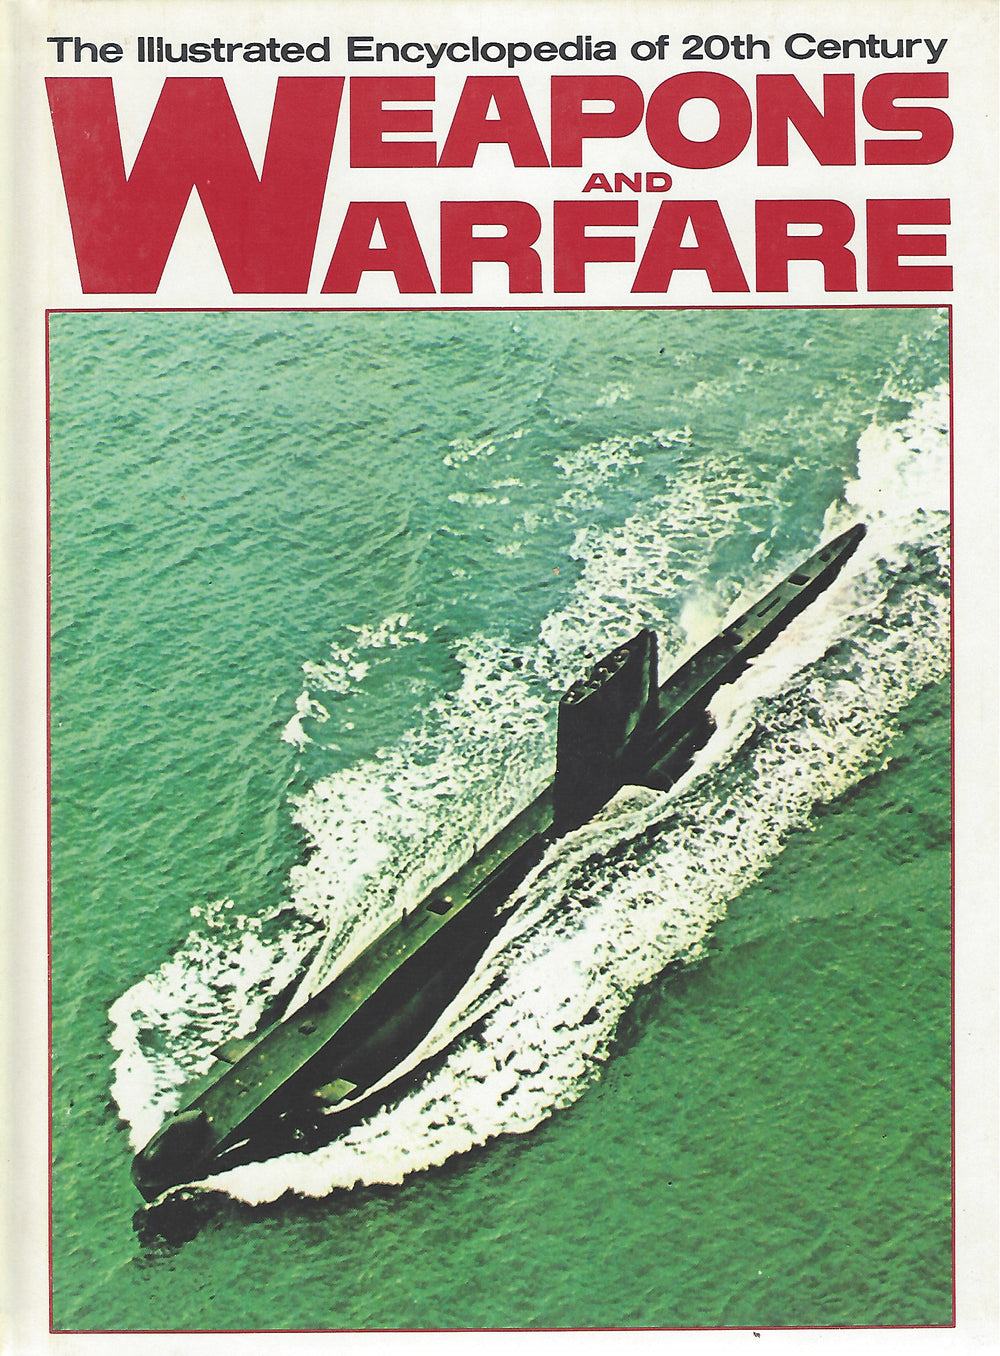 The Illustrated Encyclopedia of 20th Century:  Weapons and Warfare; Volume 20 Plo/Roy    (1978)